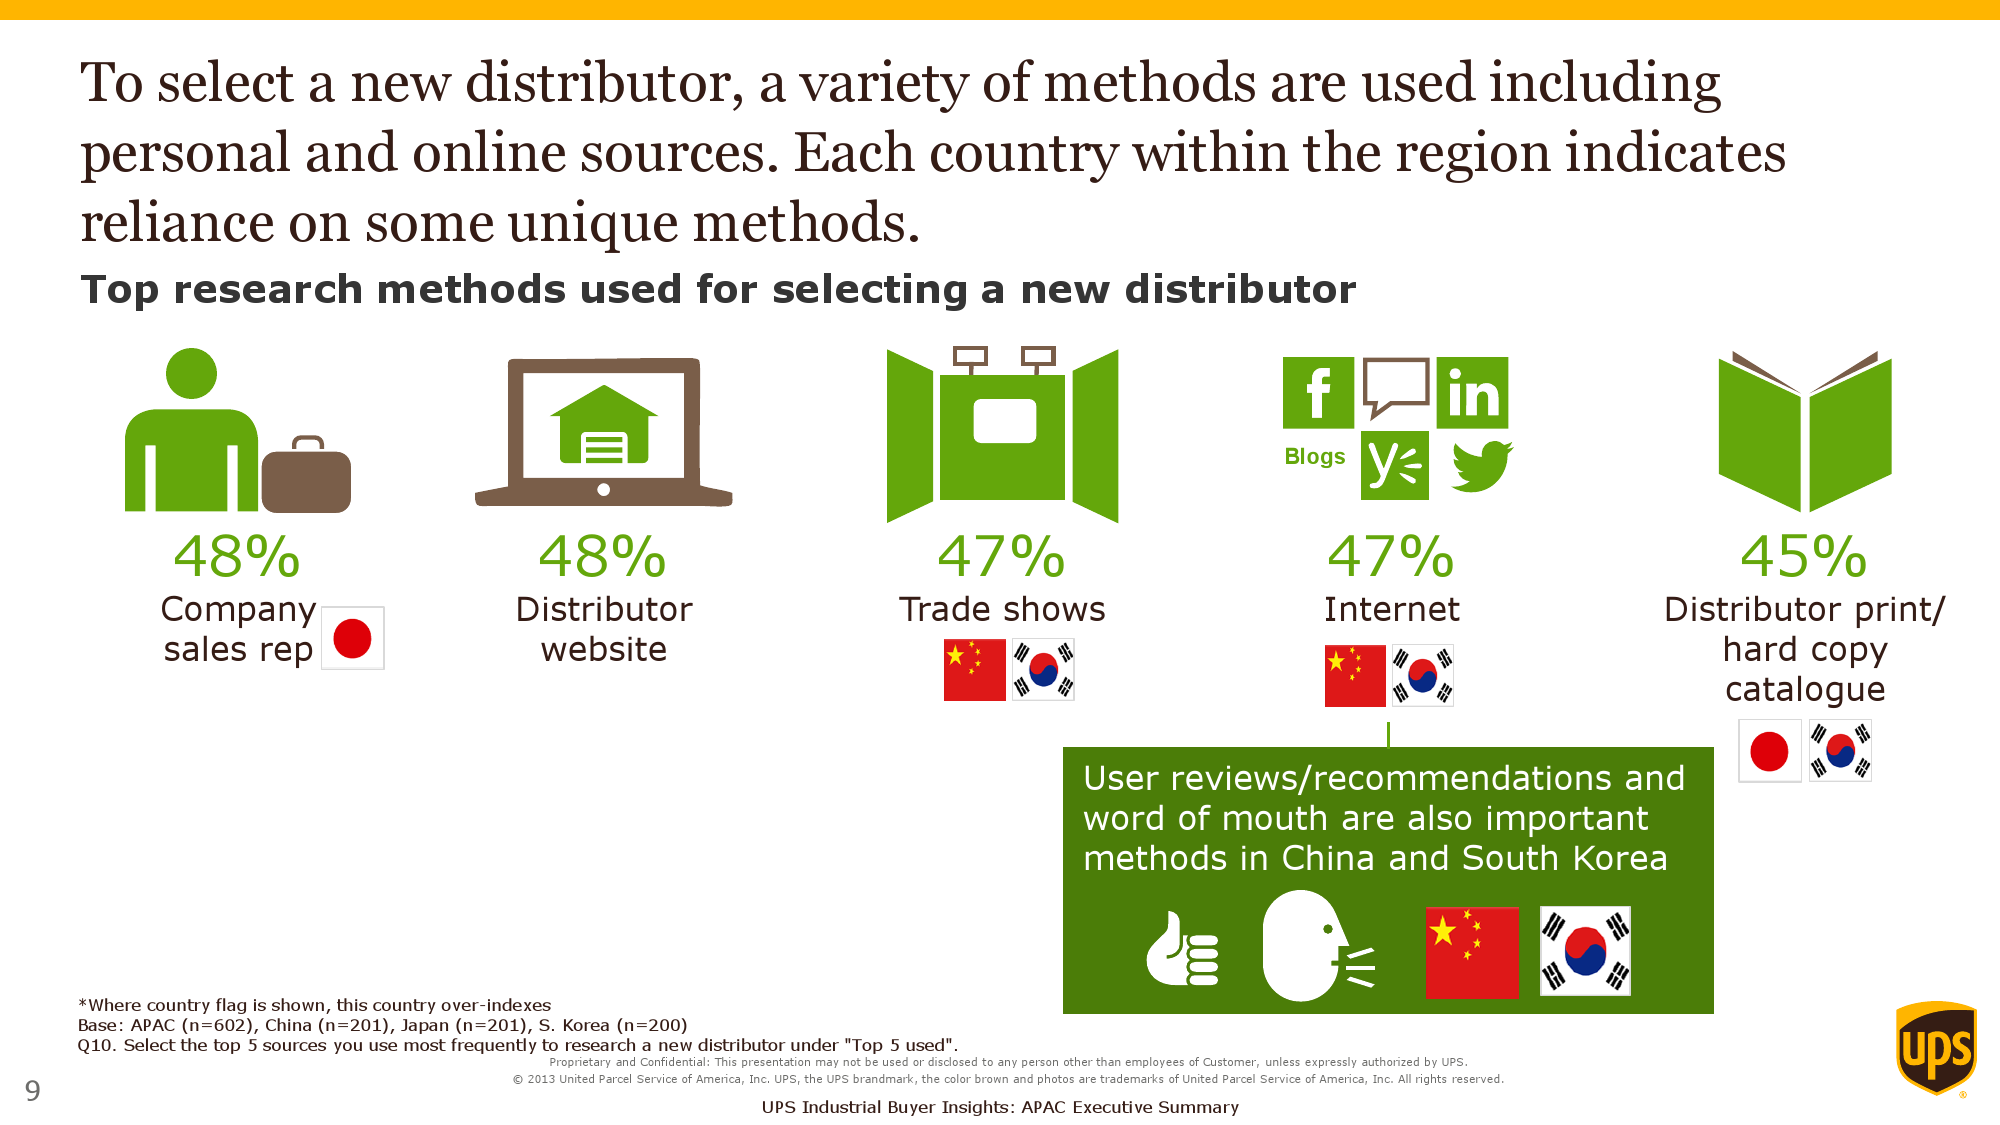 2015 Purchasers Insights Study_Exec Summary_APAC_000009